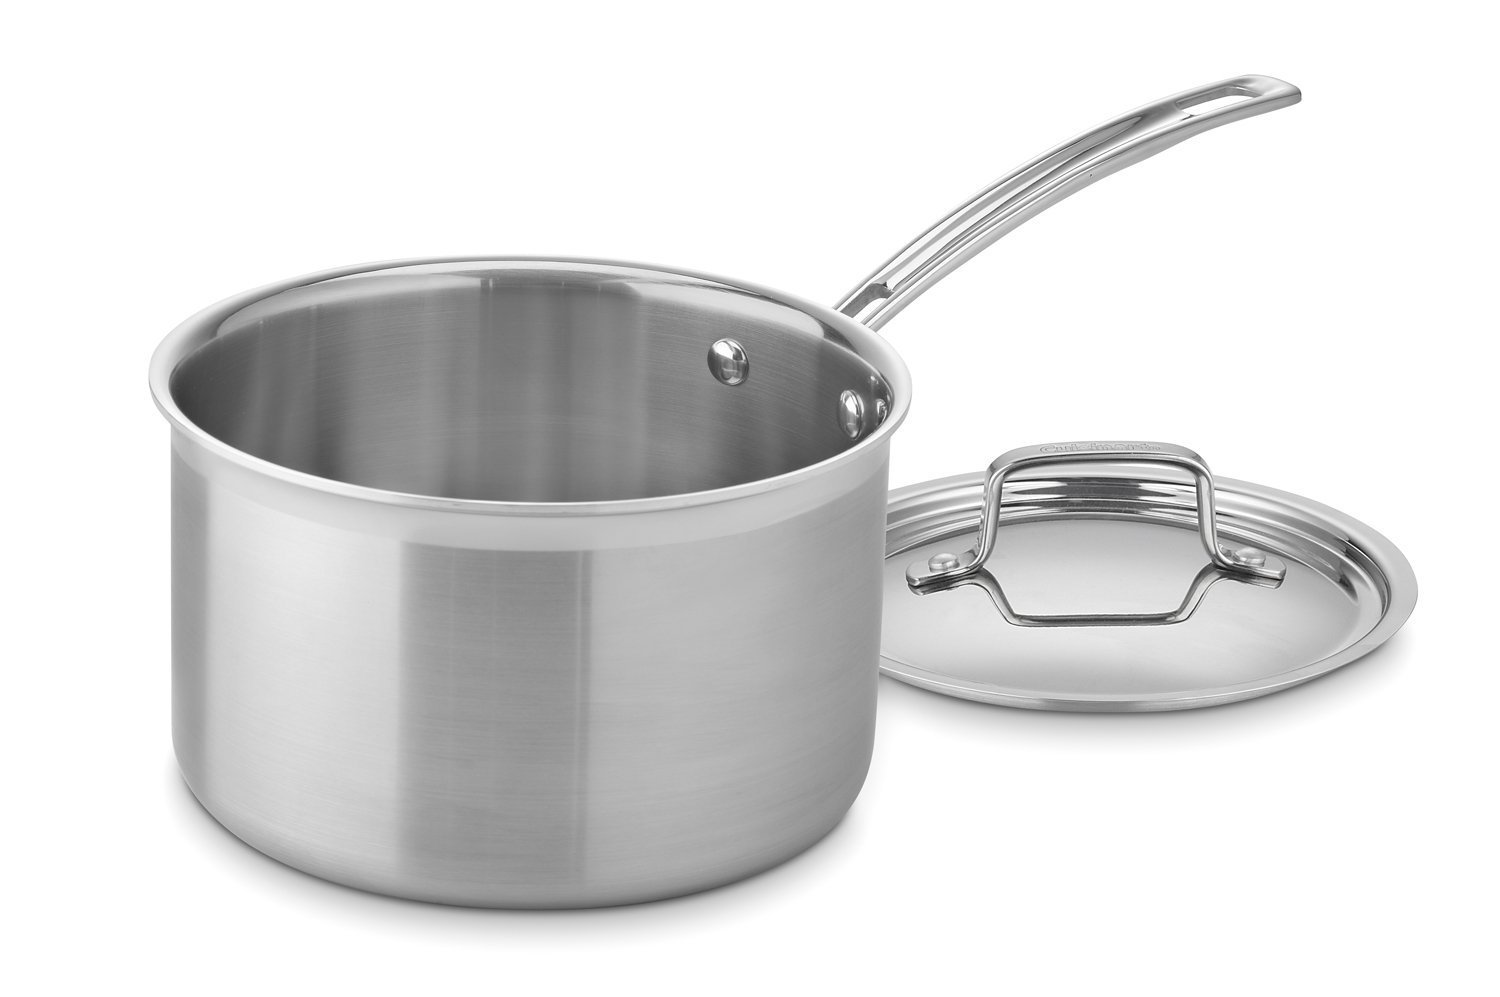 cuisinartsaucepan induction cookware